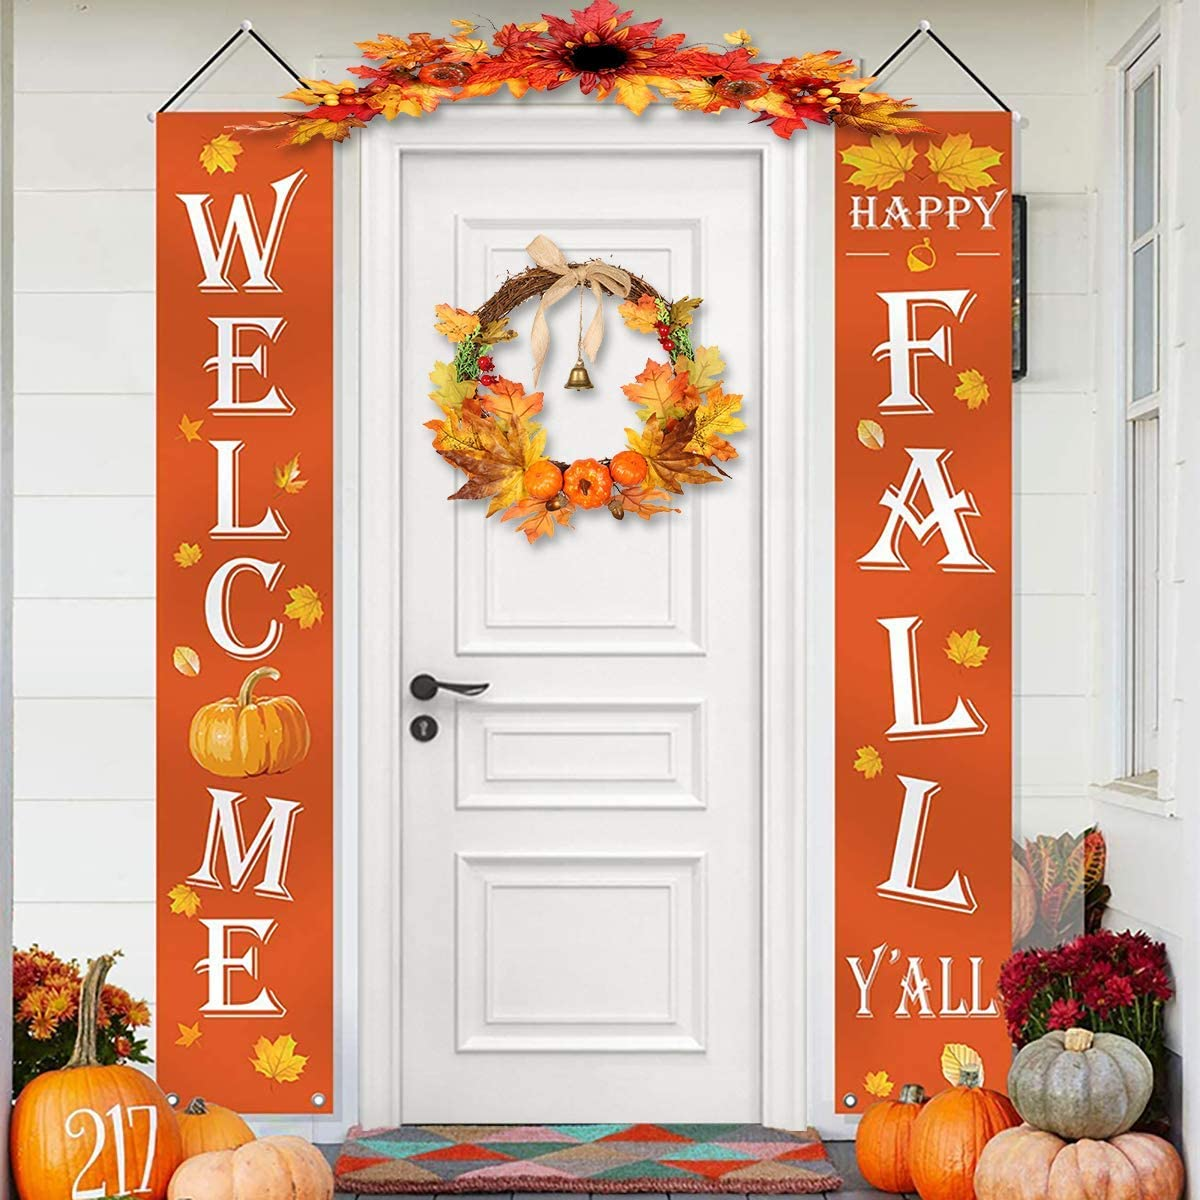 Fall Decorations - Welcome Happy Fall Y'all, Autumn Large Hanging Flags Harvest Welcome Signs Porch Banners -Fall Decorfor Home Door Outdoor Thanksgiving Birthday Party Yard